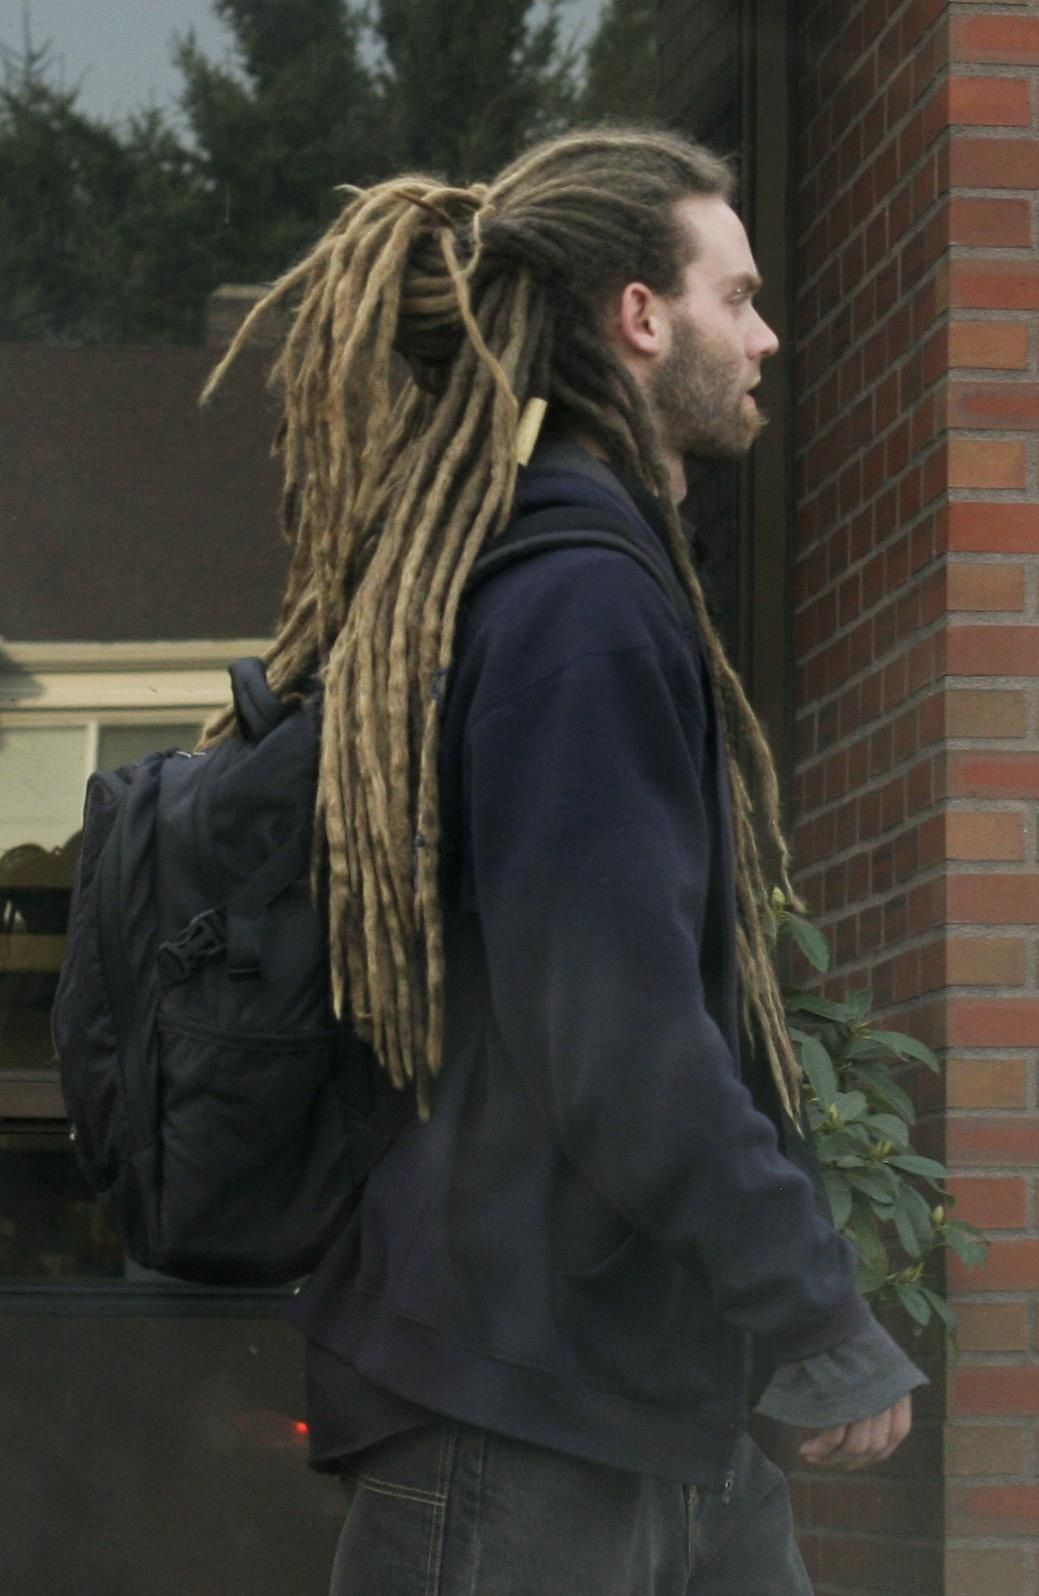 Faux Locs Male I 39;m Always Obsessing About Having My Close To The Root